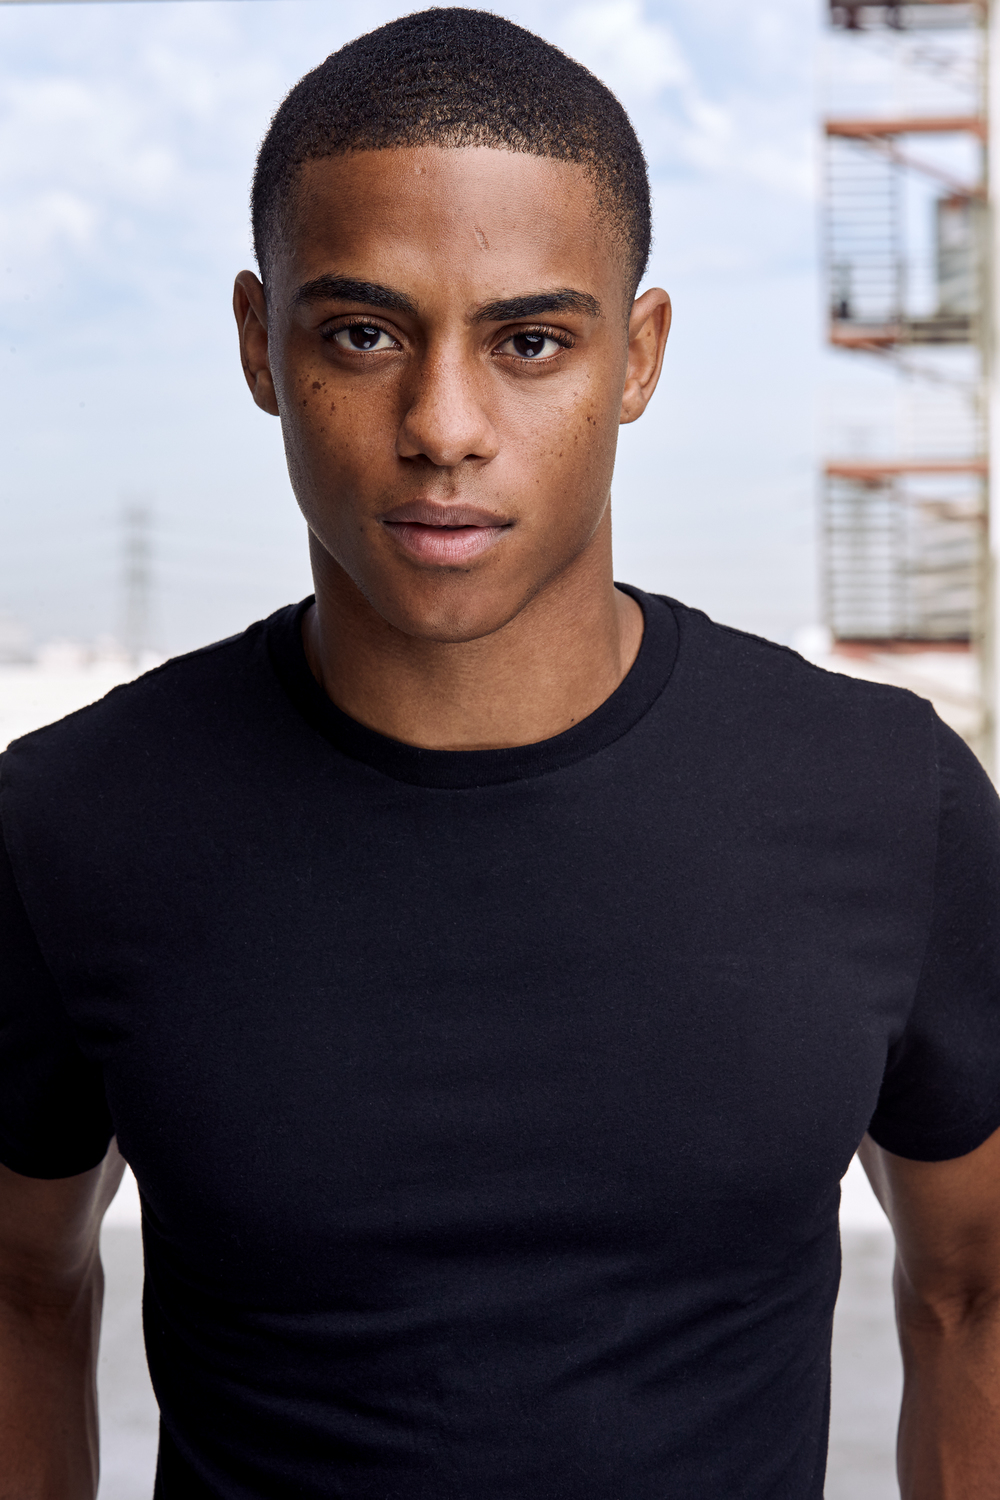 keith powers faking itkeith powers height, keith powers quotes, keith powers instagram, keith powers wattpad, keith powers wiki, keith powers, keith powers age, keith powers wikipedia, keith powers bio, keith powers twitter, keith powers birthday, keith powers and zendaya, keith powers vine, keith powers snapchat, keith powers straight outta compton, keith powers movies, keith powers faking it, keith powers model, keith powers facebook, keith powers gay